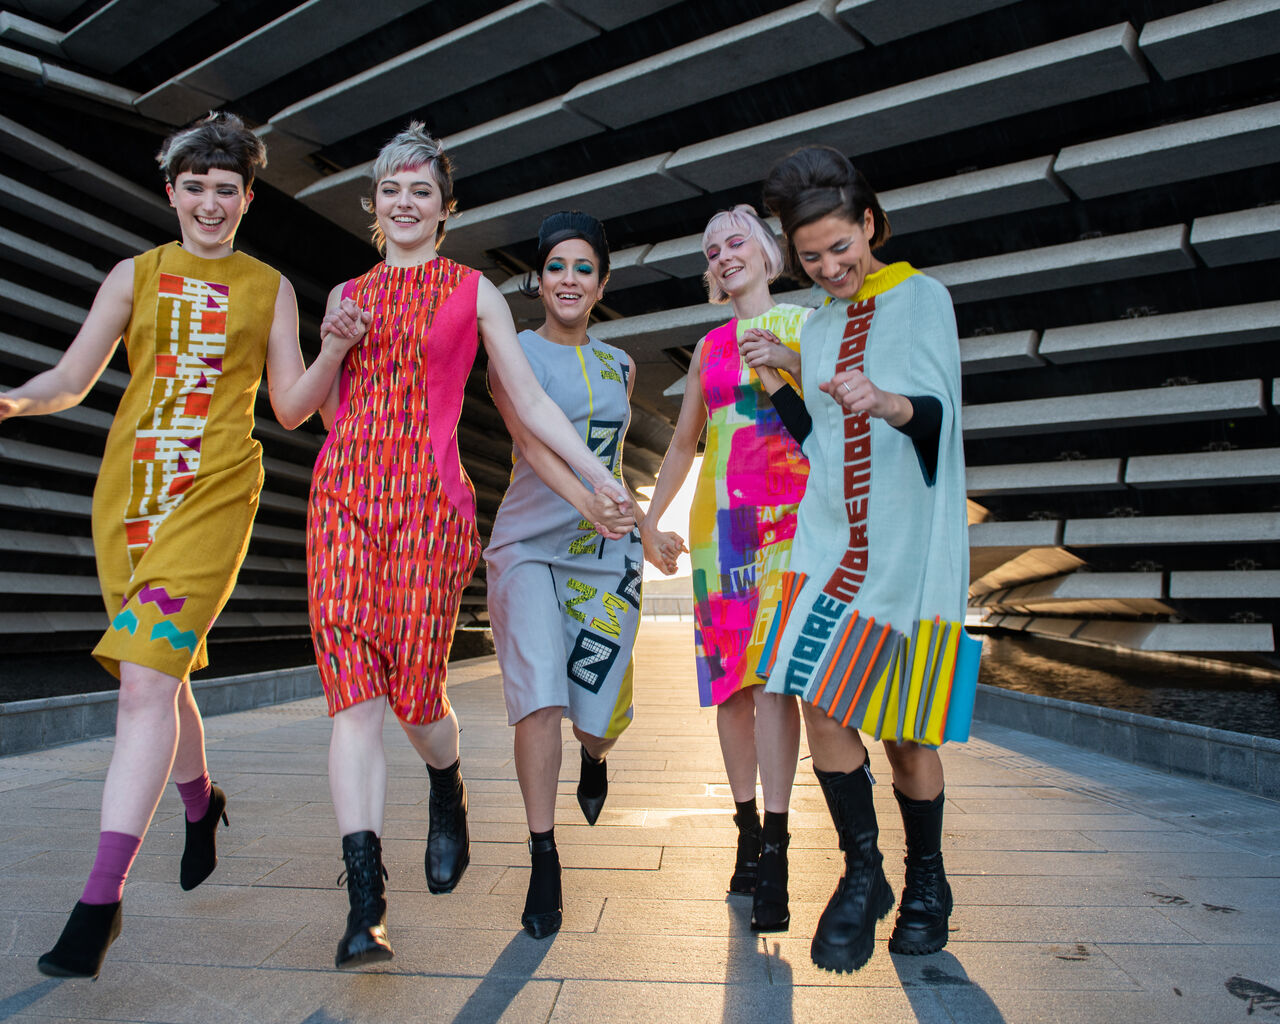 Five models wearing a range of Quant-inspired garments in bright colours. They are photographed running together and smiling in front of the museum.